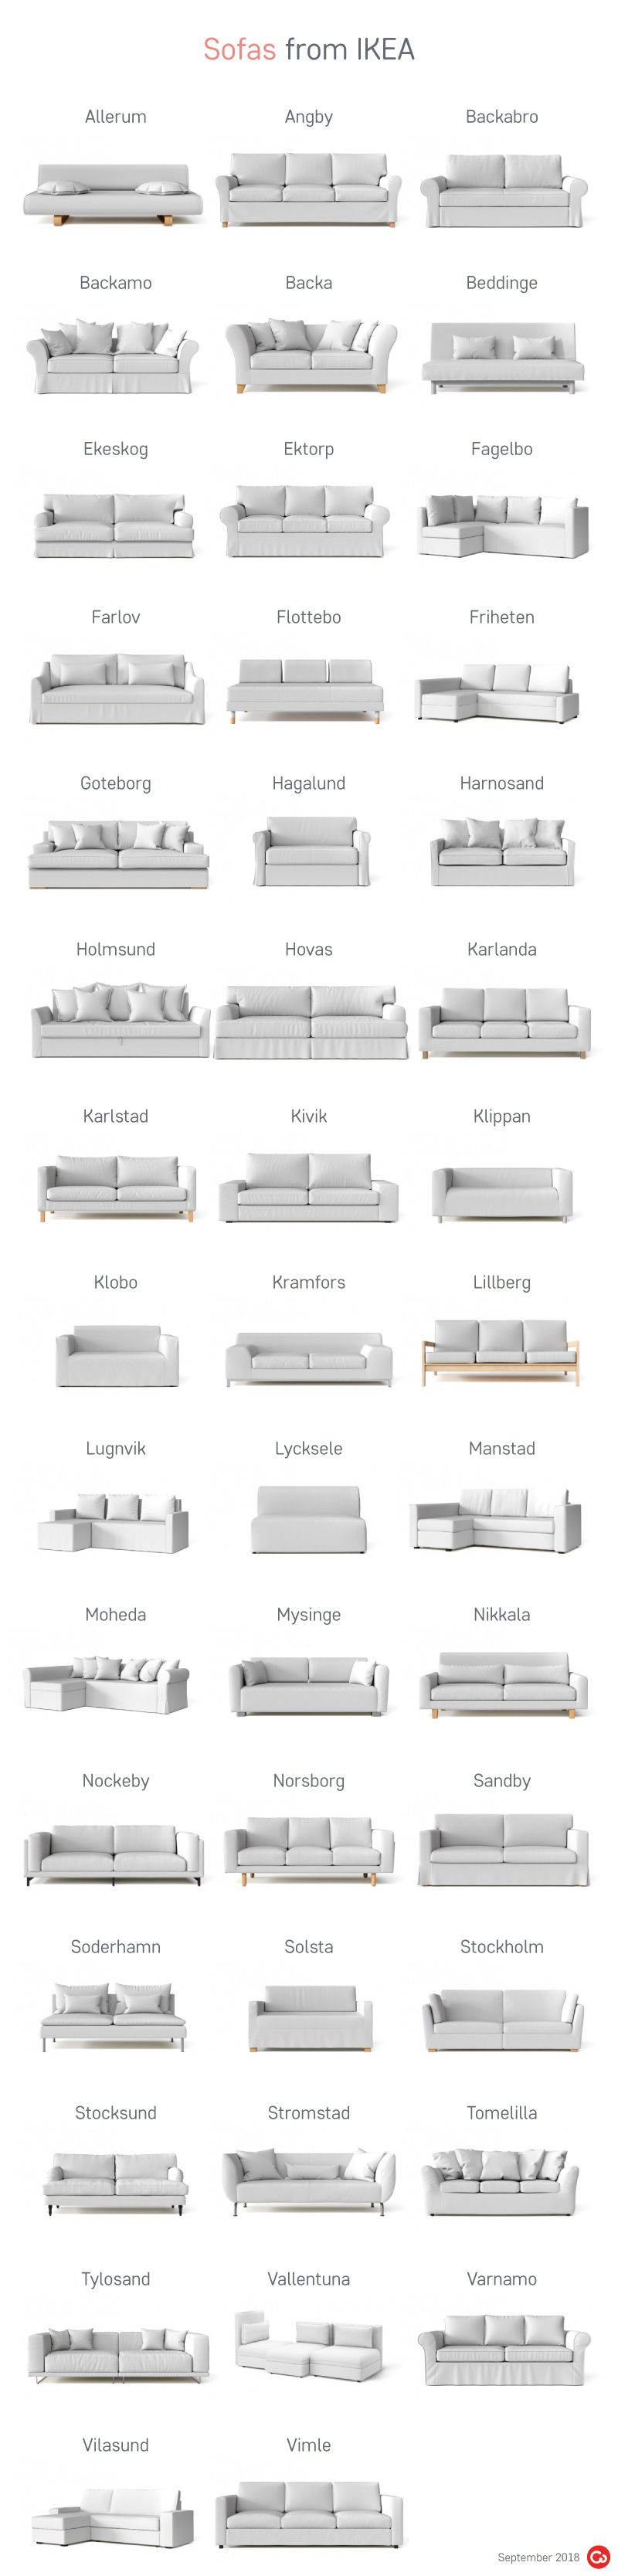 Replacement Ikea Sofa Covers For Discontinued Ikea Couch Models Ikea Couch Ikea Sofa Ikea Sofa Covers